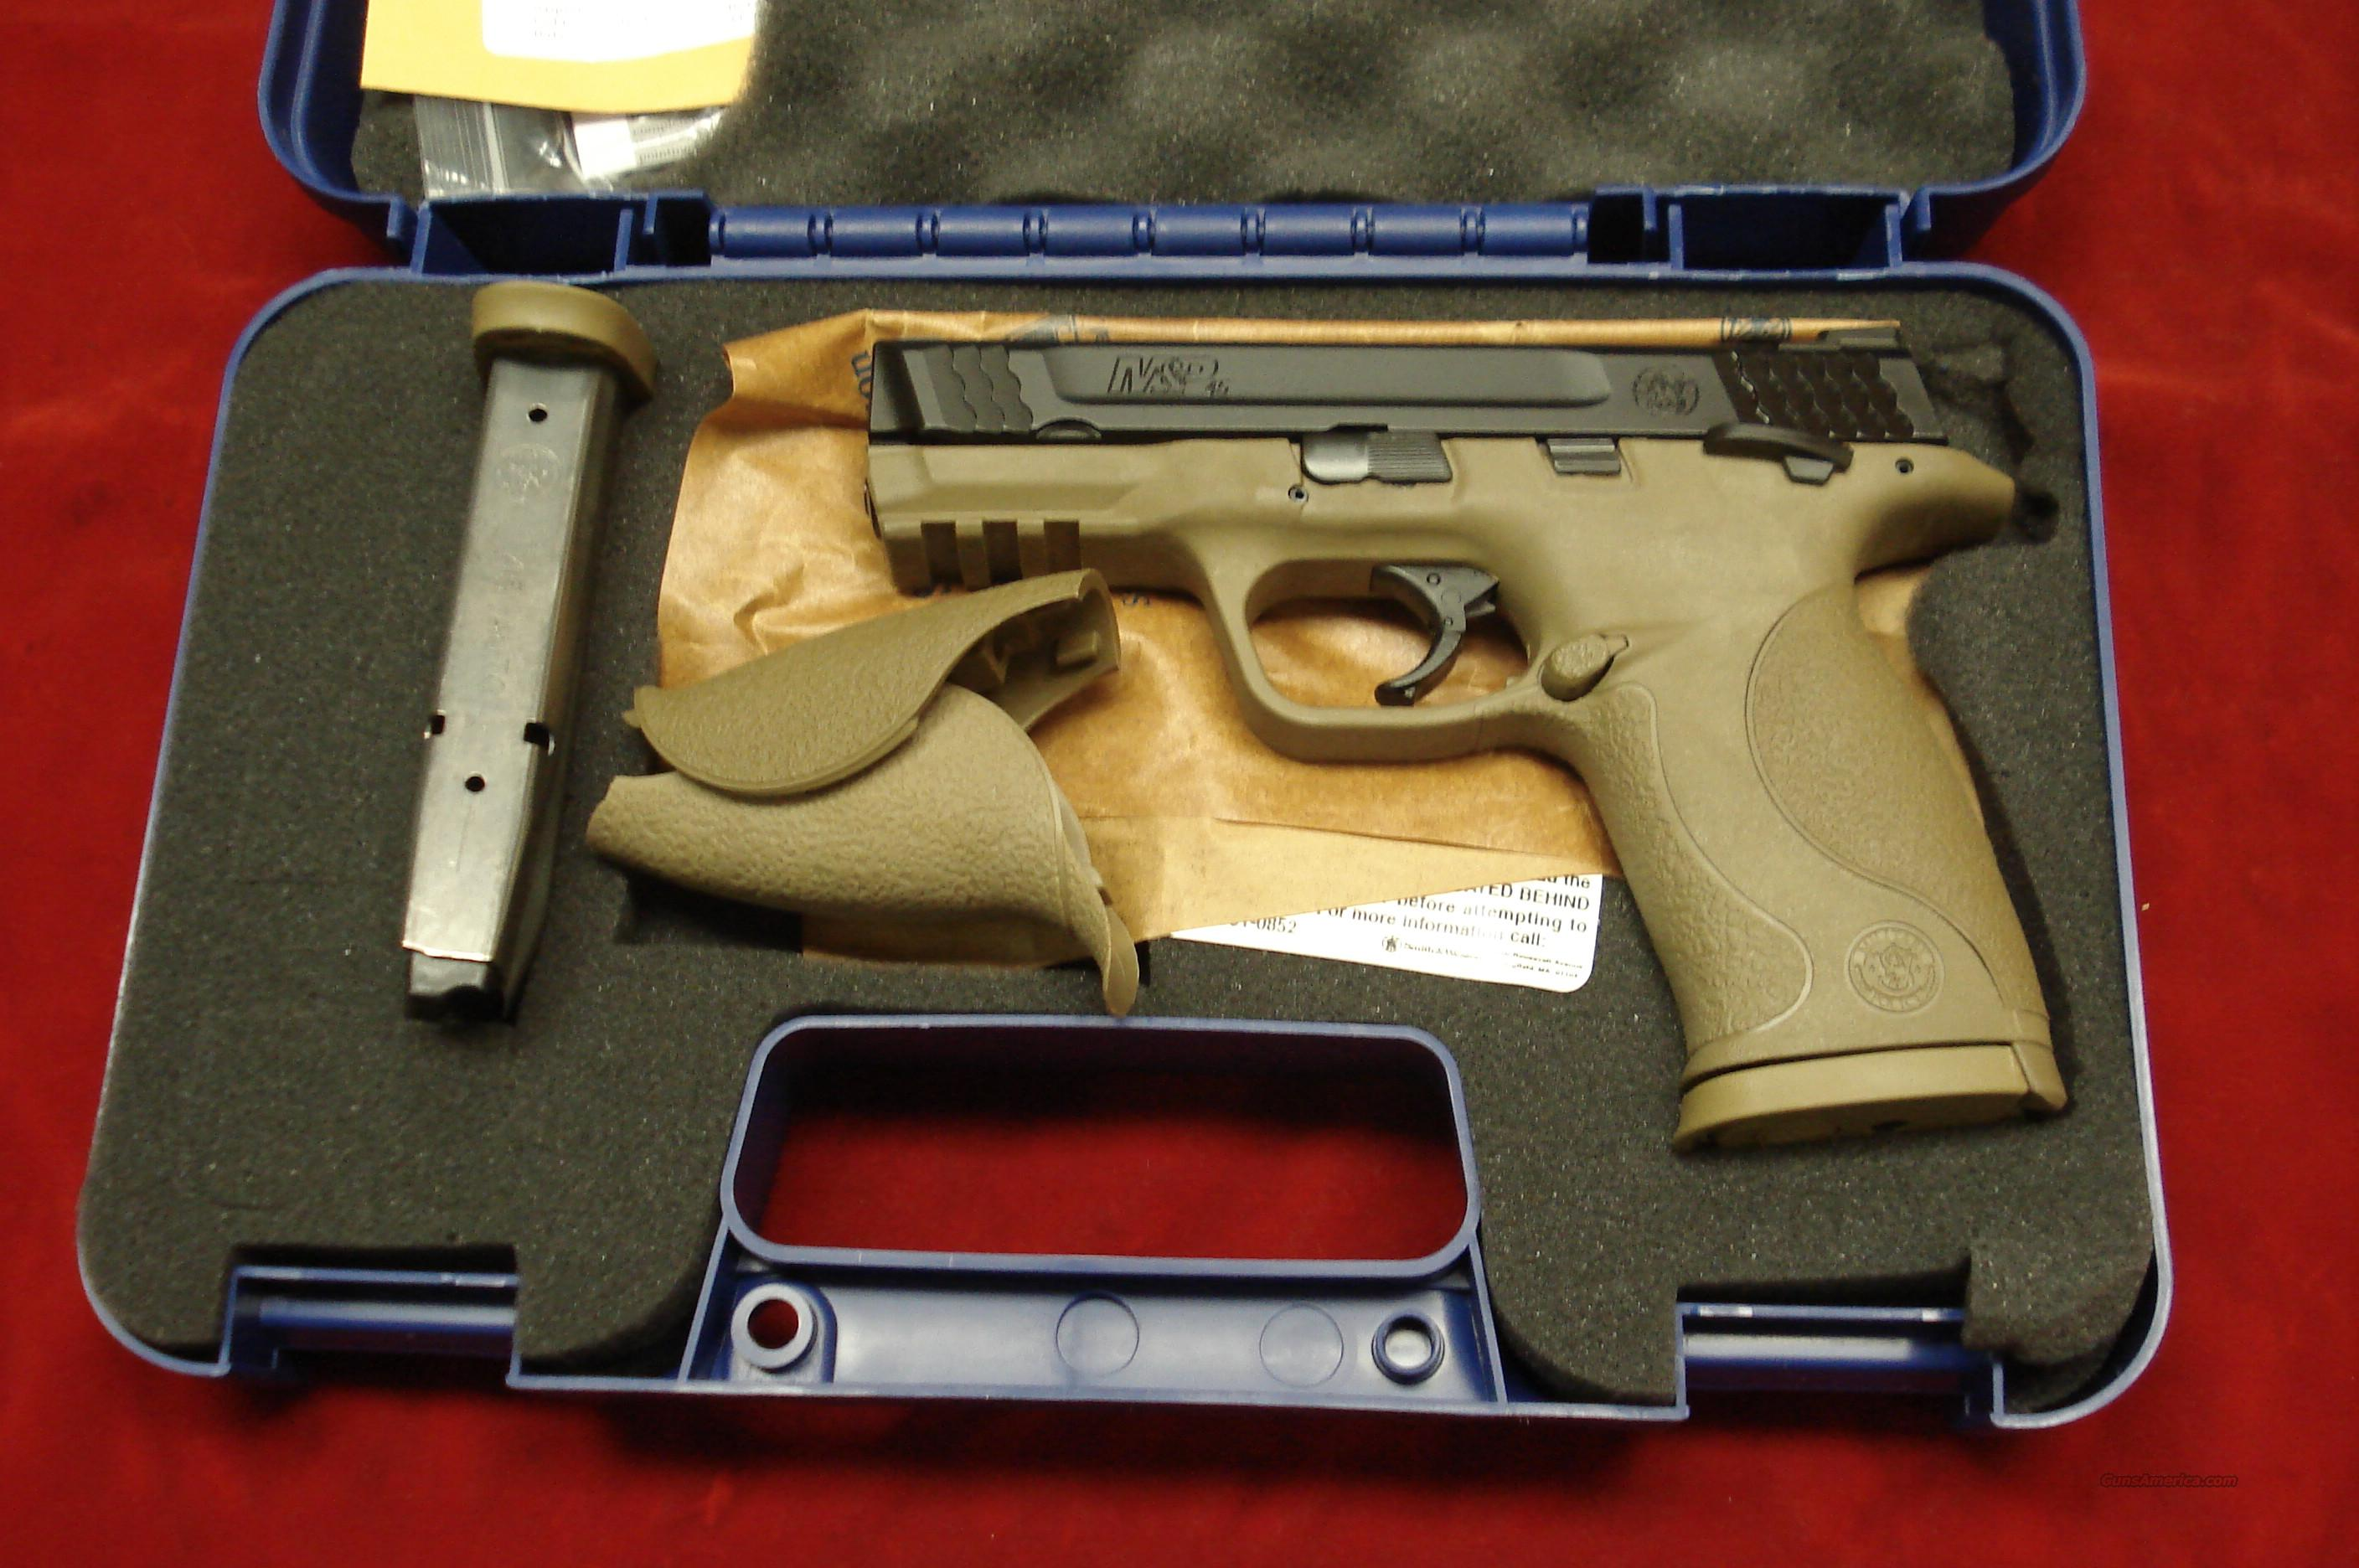 SMITH AND WESSON M&P 45ACP DARK EARTH FINISH NEW   Guns > Pistols > Smith & Wesson Pistols - Autos > Polymer Frame